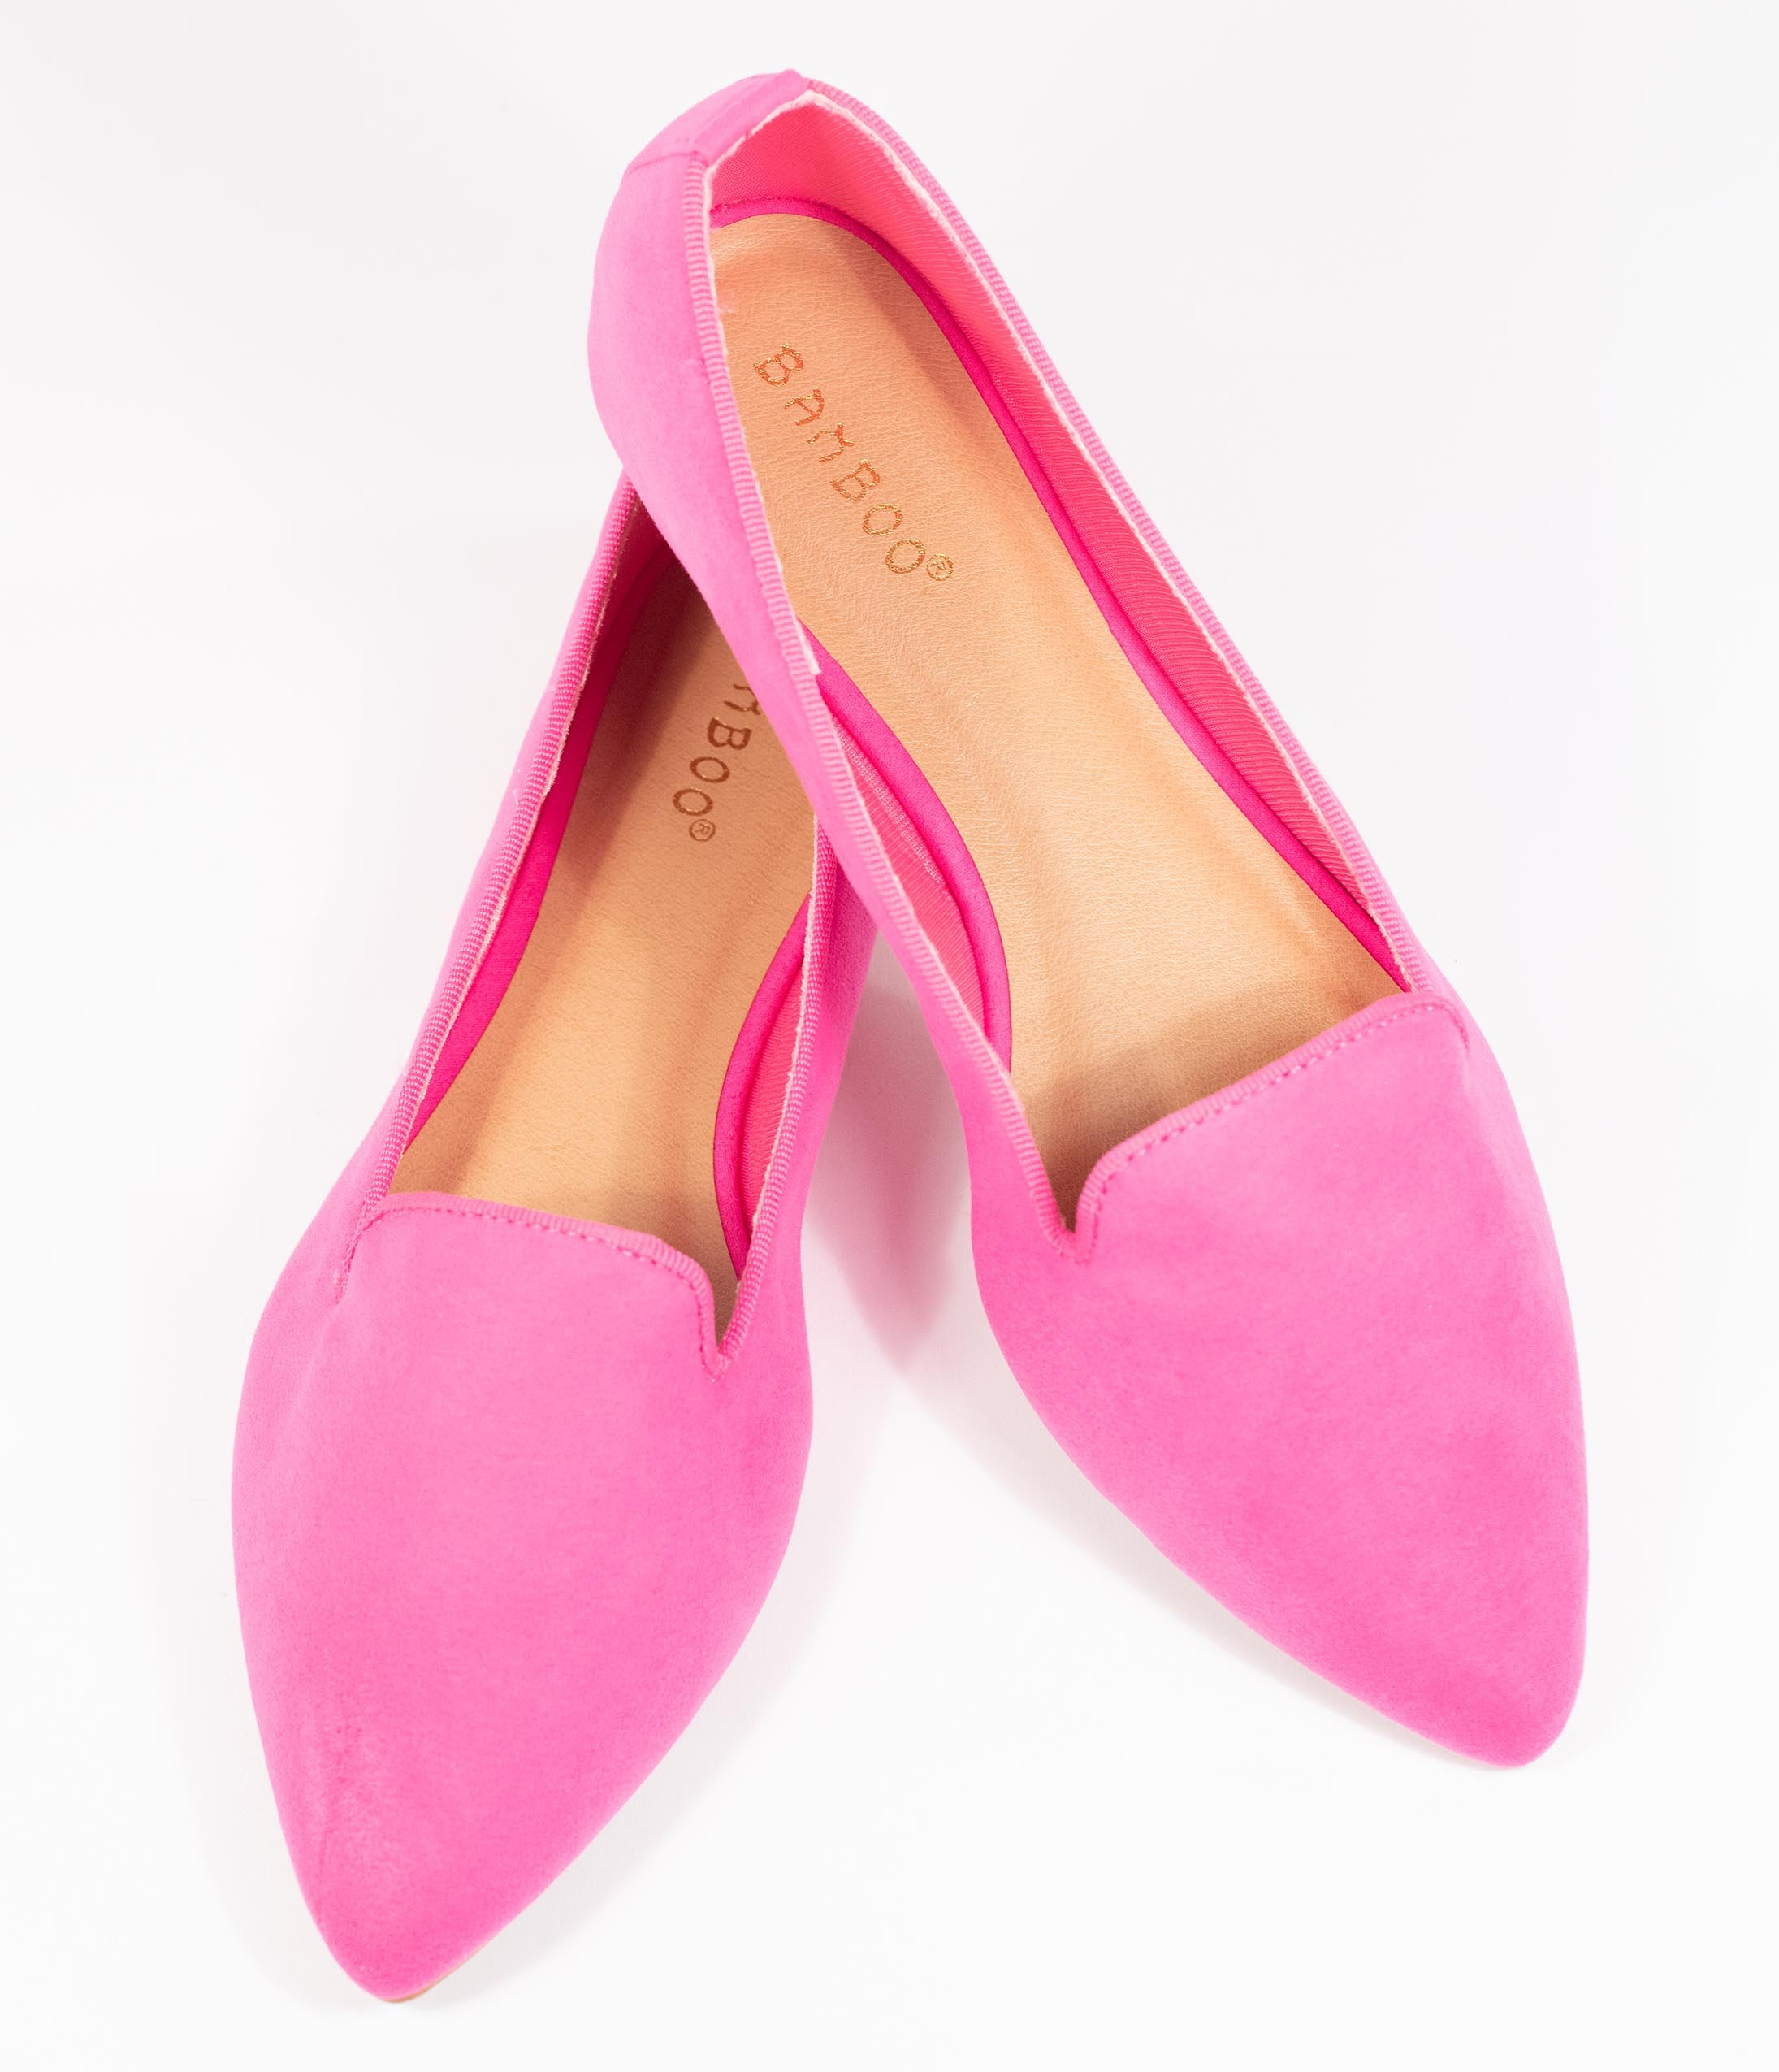 80s Shoes, Sneakers, Jelly flats Hot Pink Suede Loafer Flats $42.00 AT vintagedancer.com